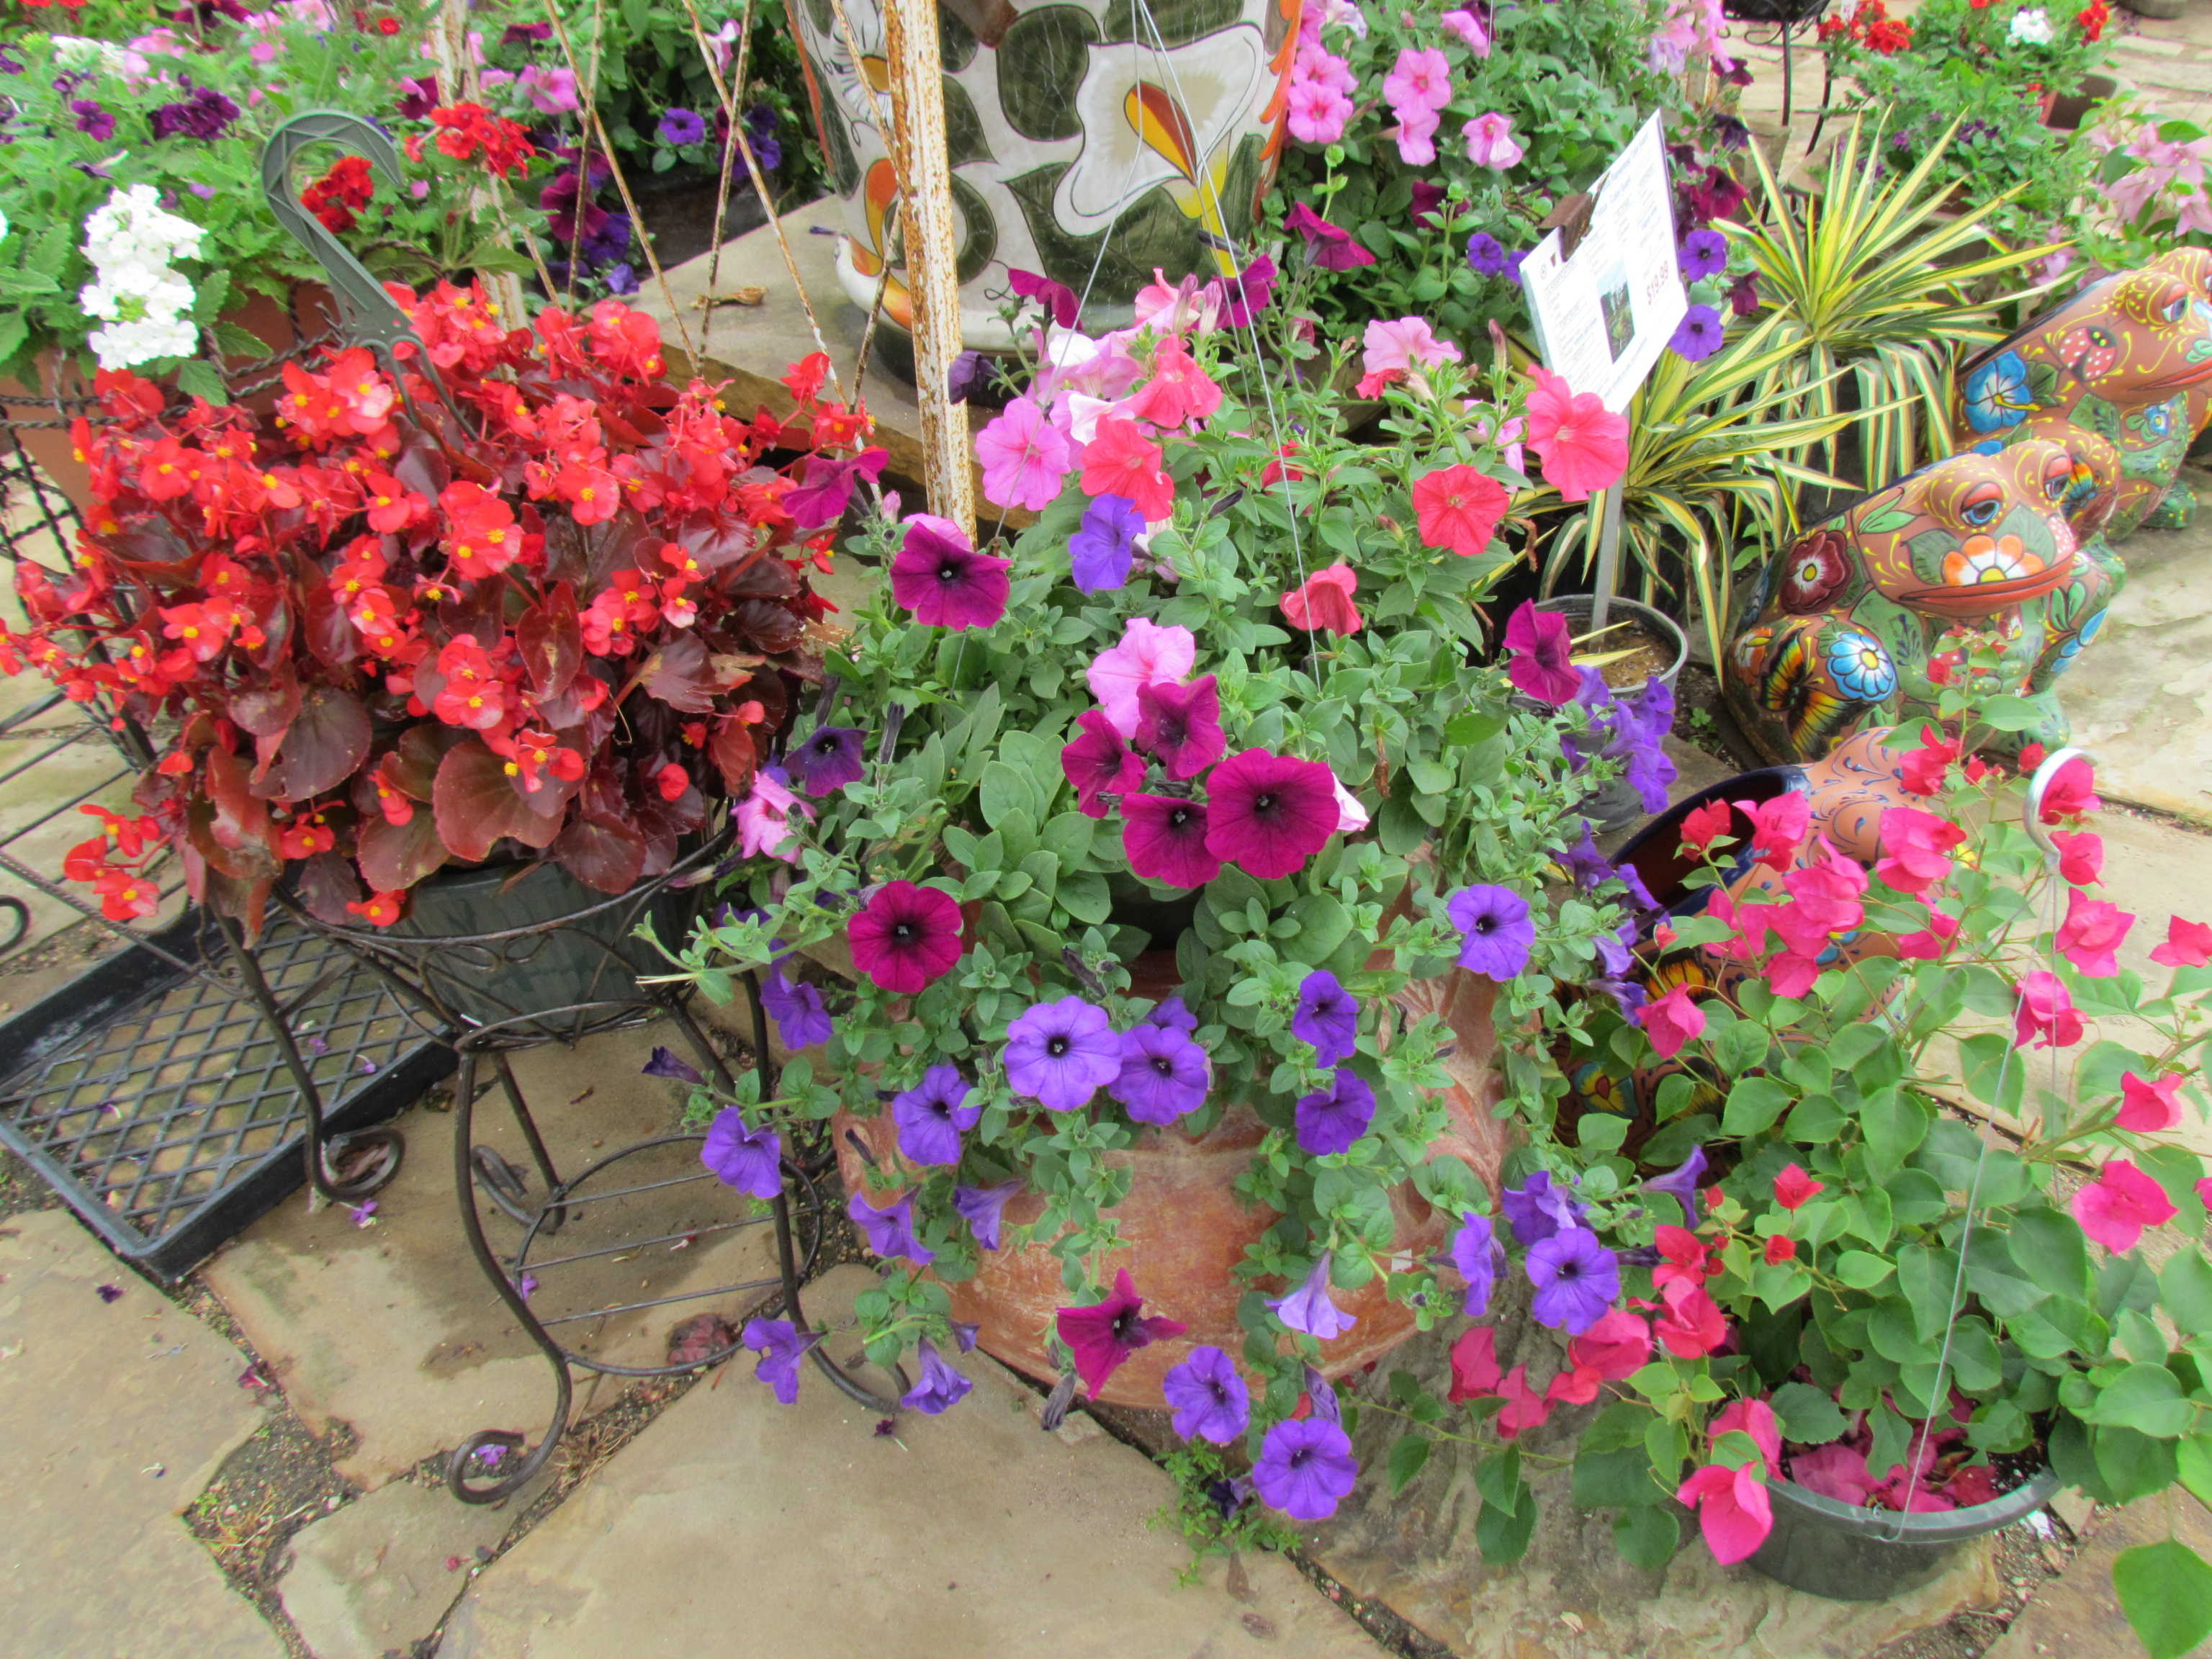 Hanging baskets of begonias, petunias, lantana and more at J&J Nursery, Spring, TX